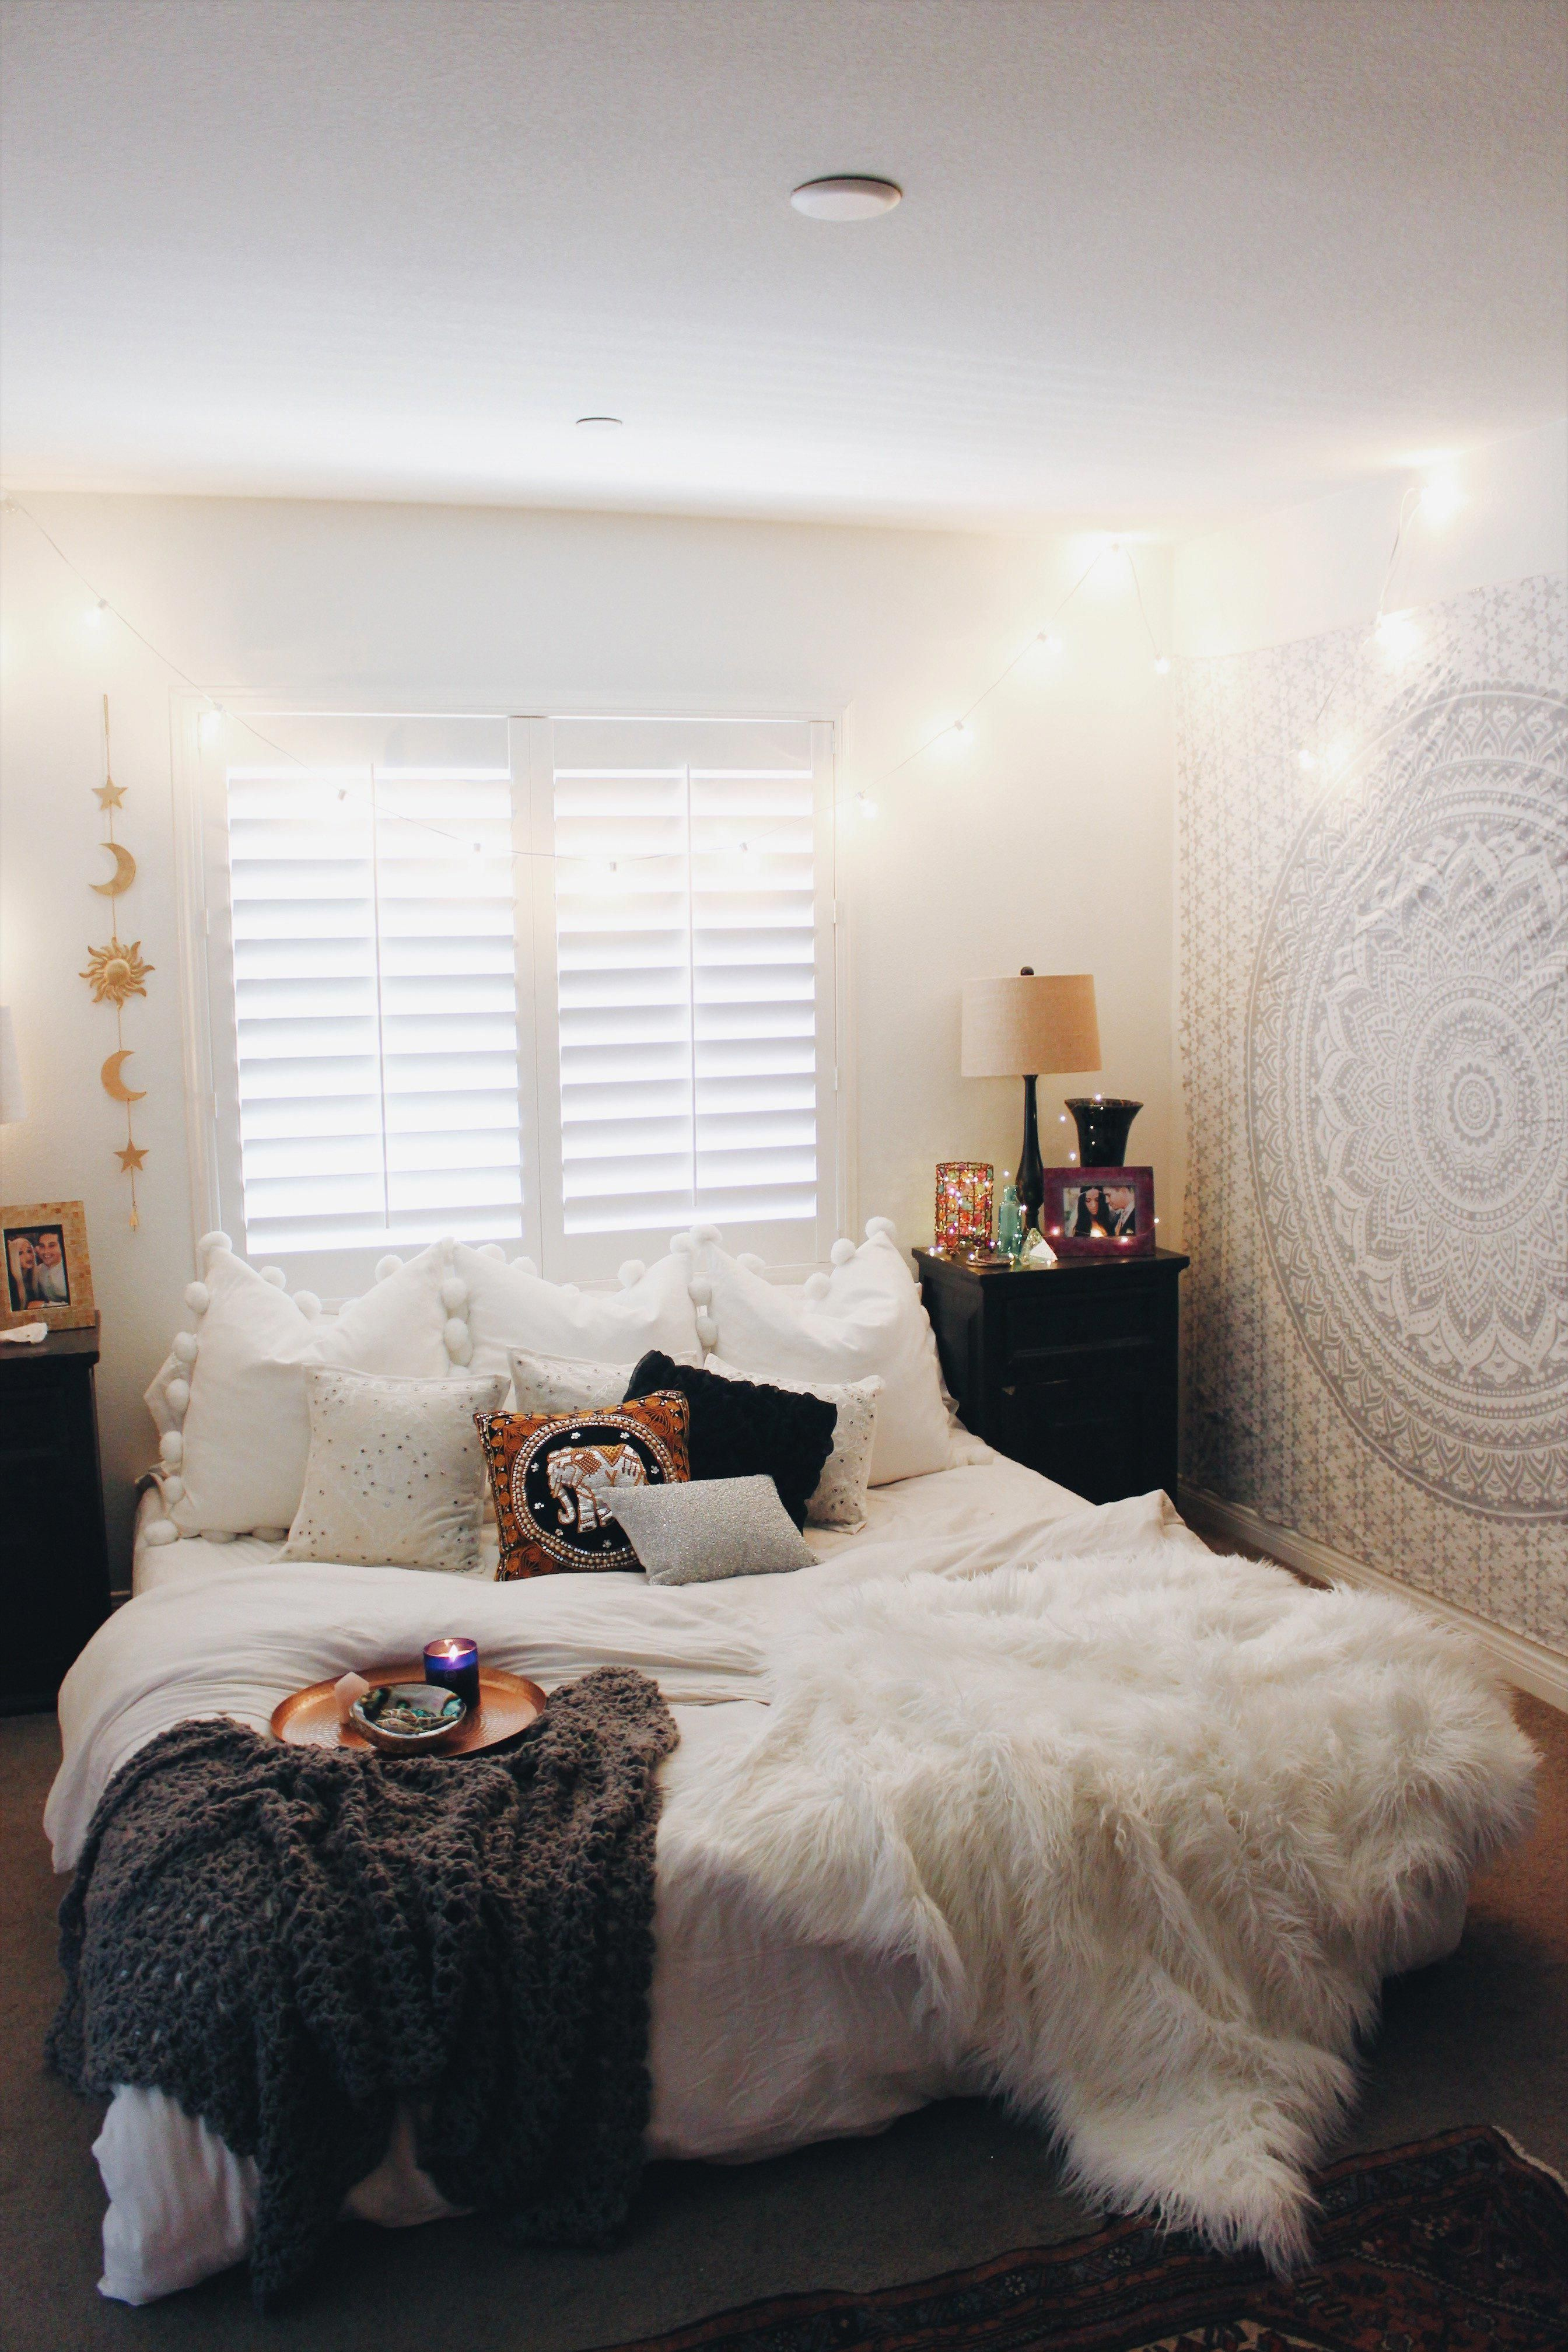 Bedroom Styles Pretty Bedrooms For Adults New Bedroom Interior Design Ideas 20190227 Home Decor Bedroom Small Room Design Small Bedroom